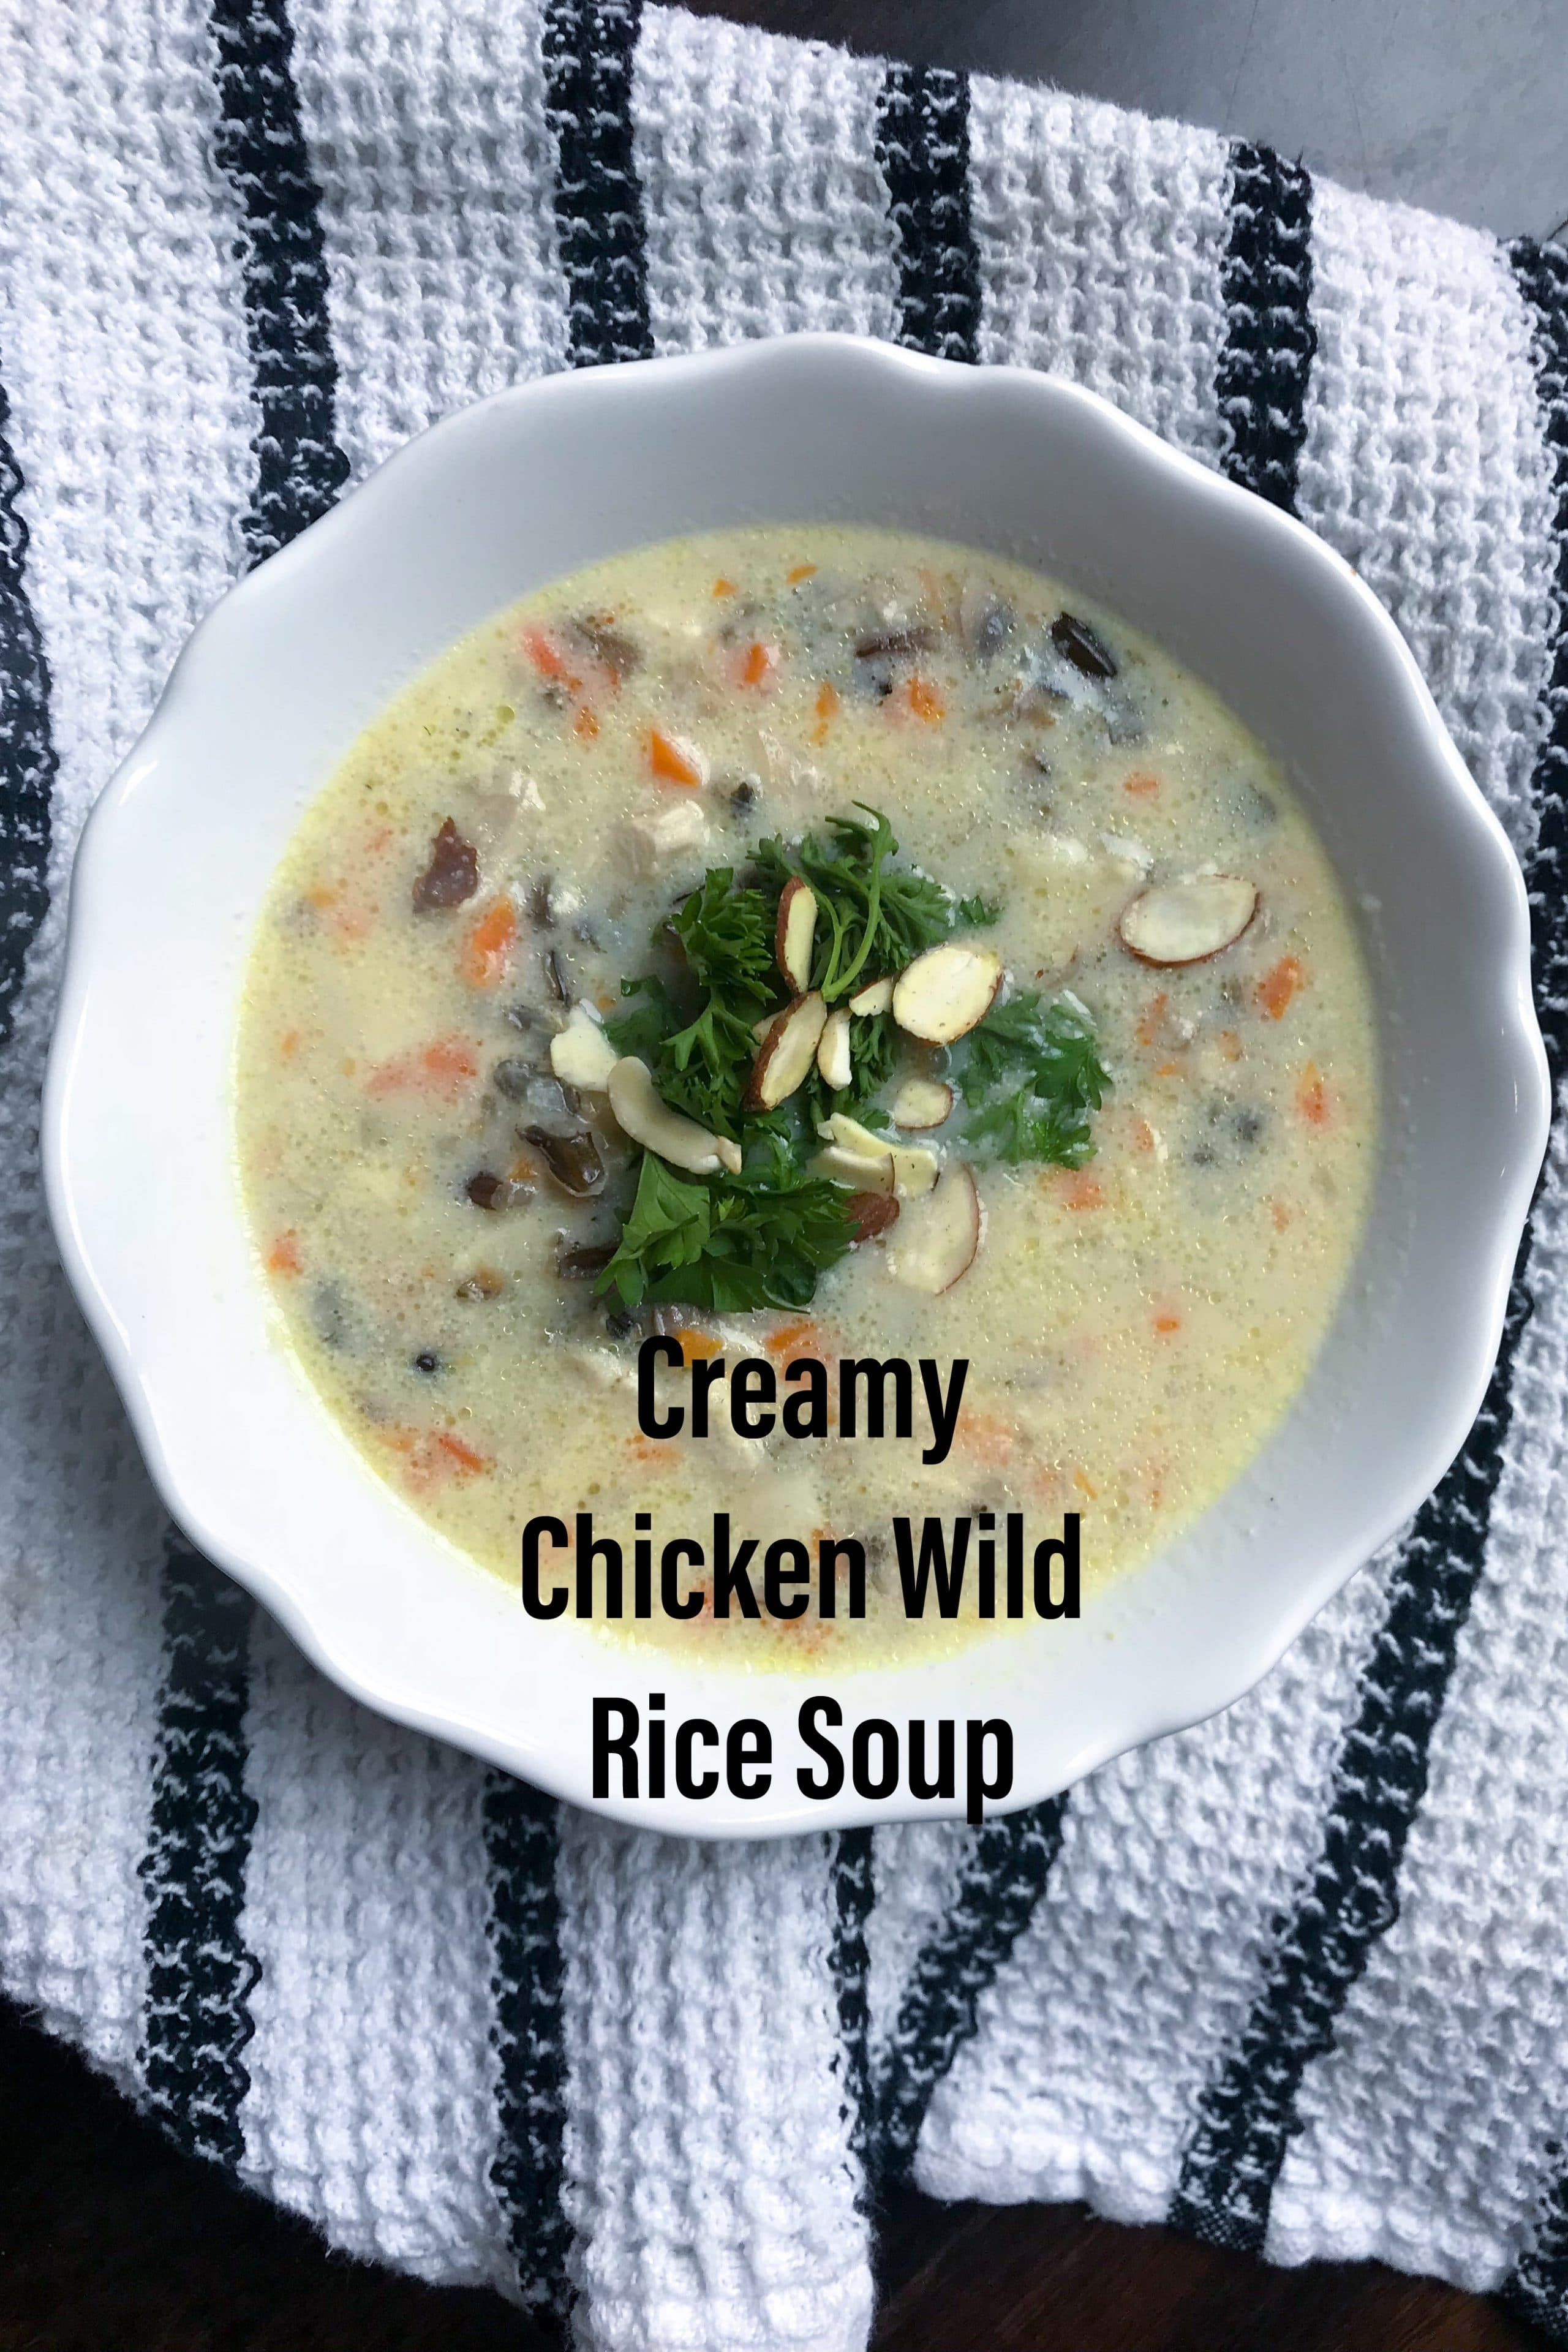 Byerlys creamy chicken wild rice soup recipe